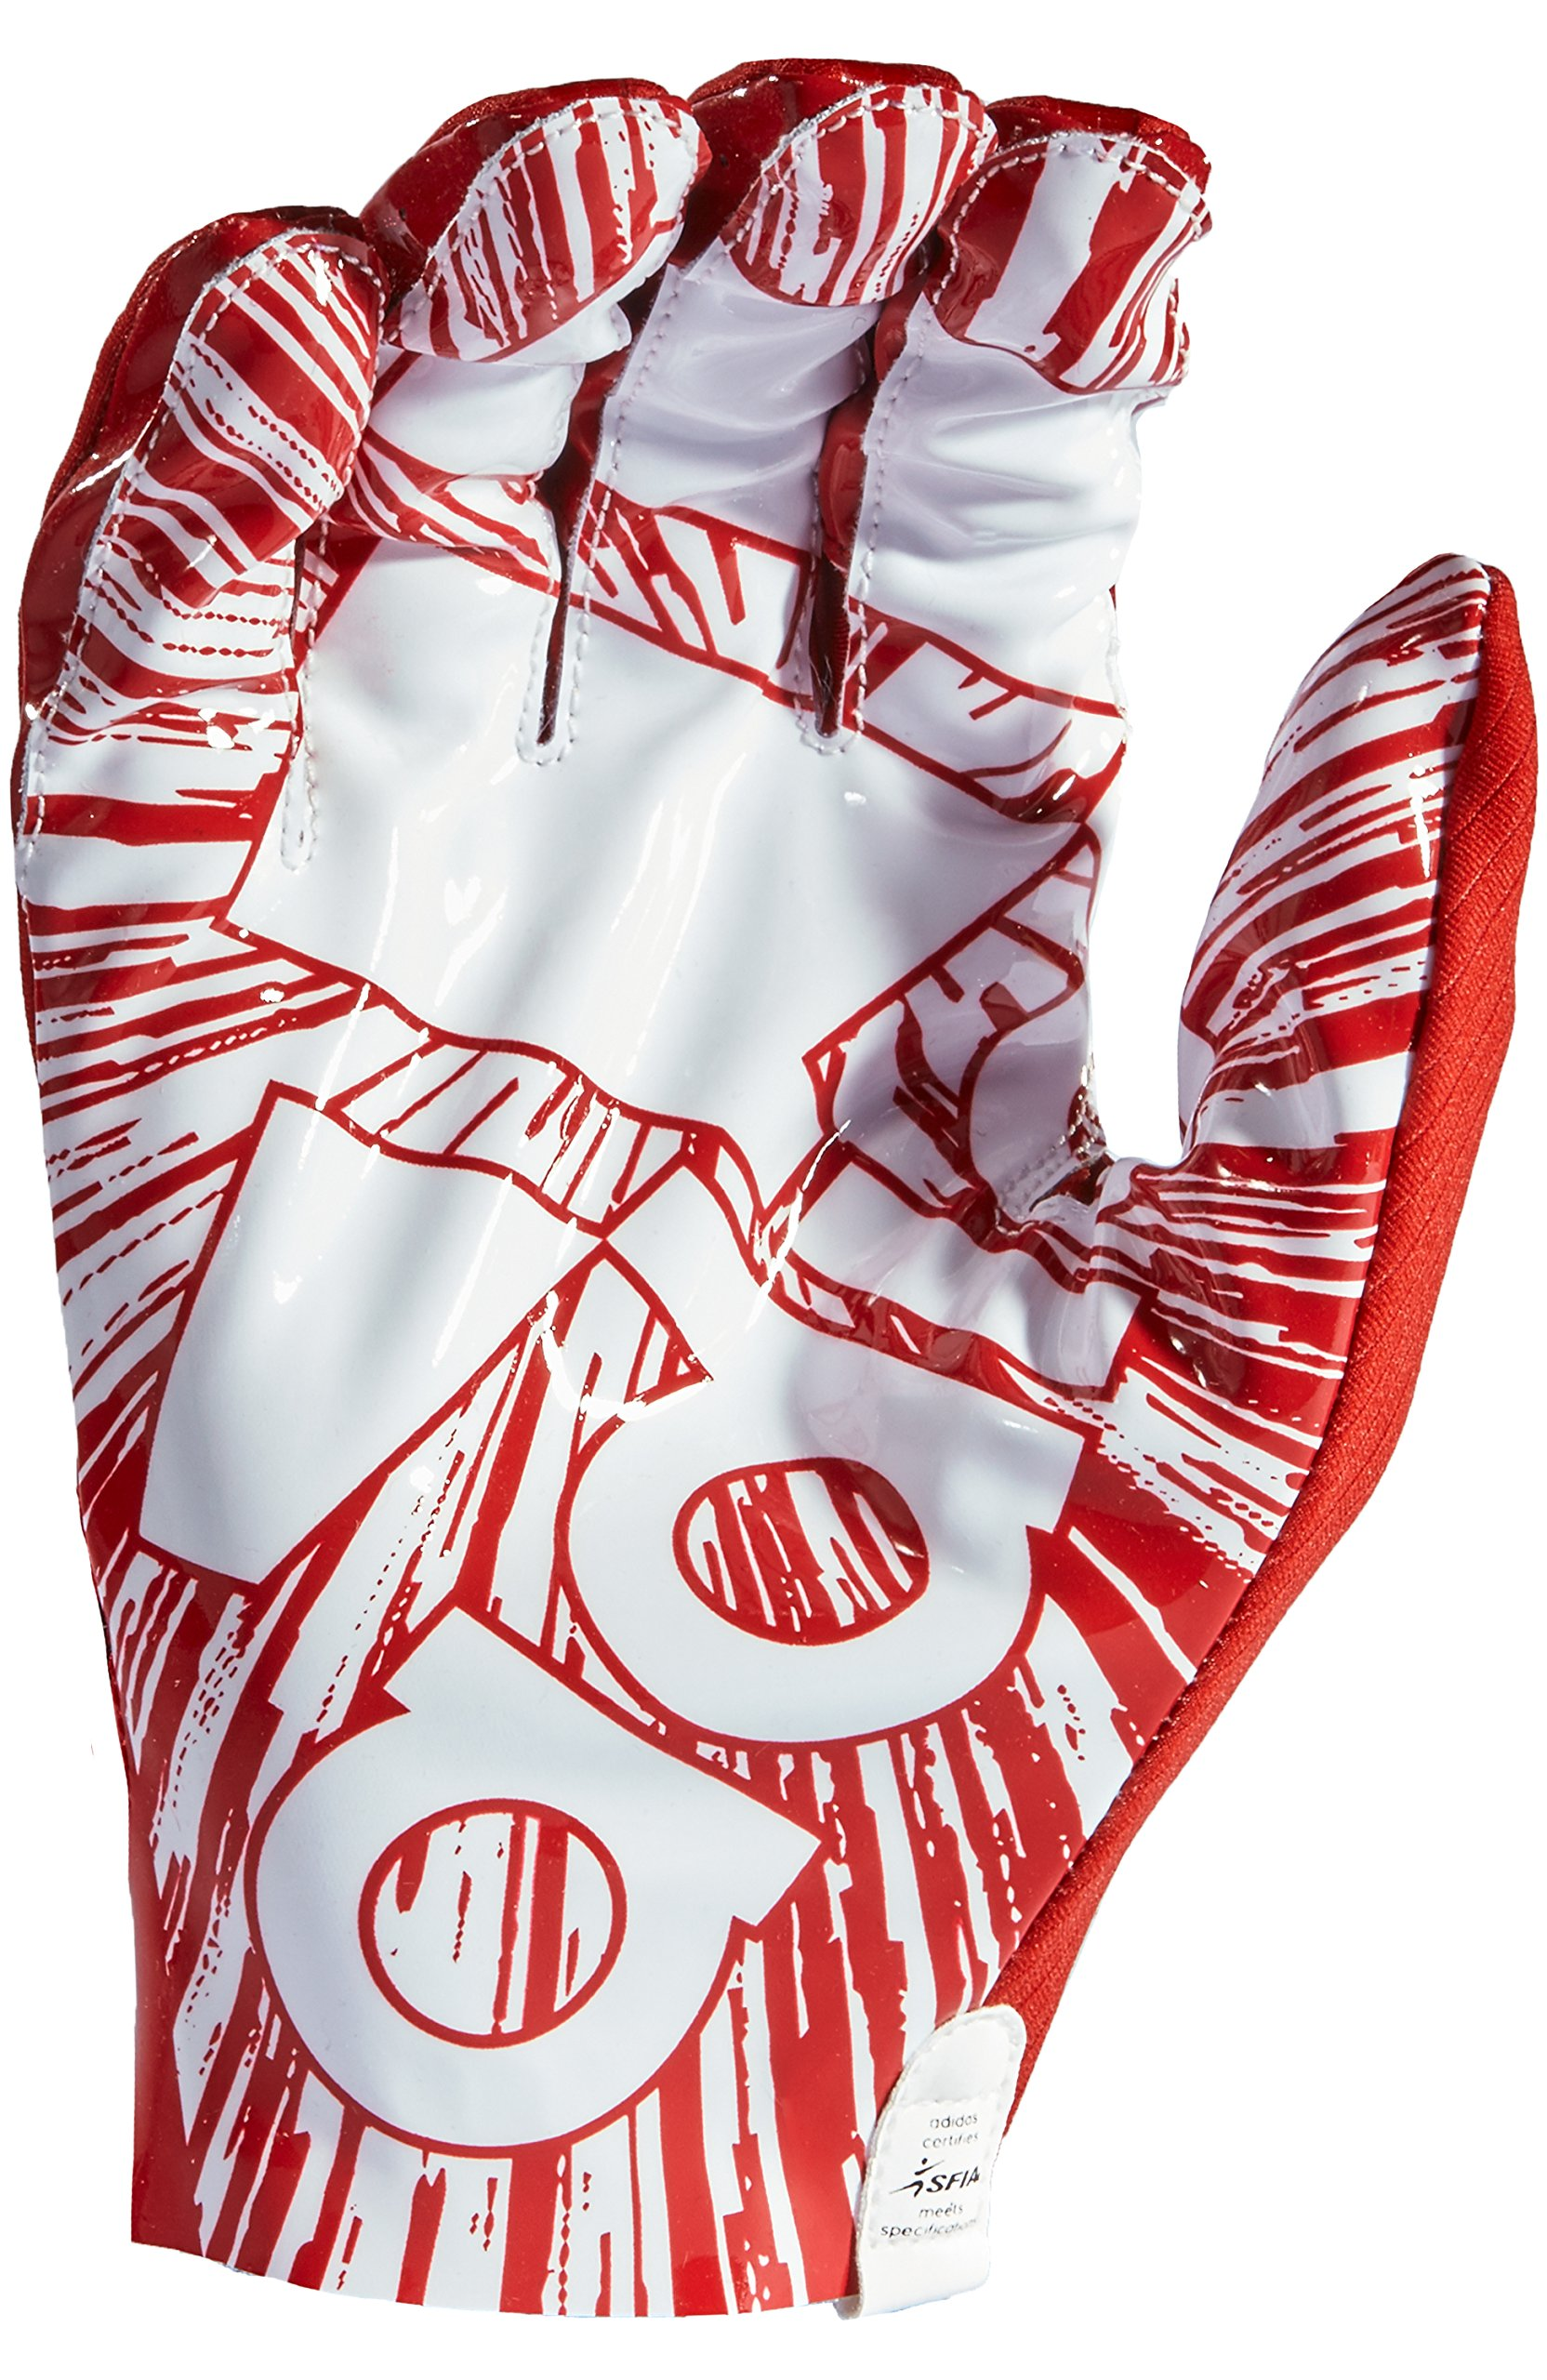 adidas AF1000 Adizero 7.0 Receiver's Gloves, Red, Large by adidas (Image #2)